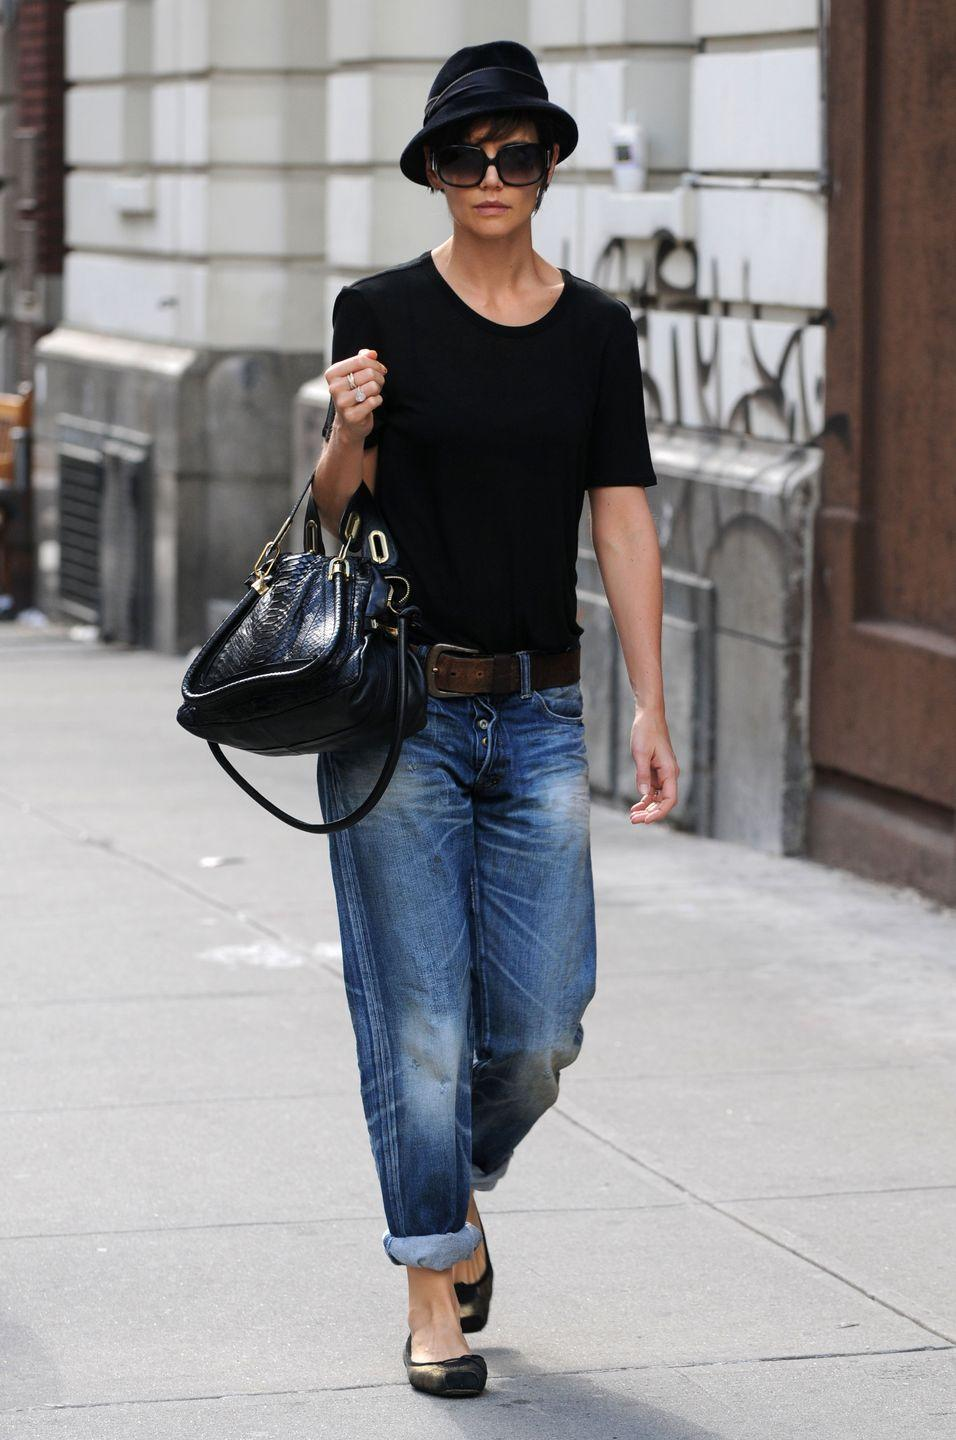 <p>And not like slightly boyish jeans made for women, but actual dude jeans taken from your boyfriend. I wonder if Katie Holmes got these in the divorce. </p>